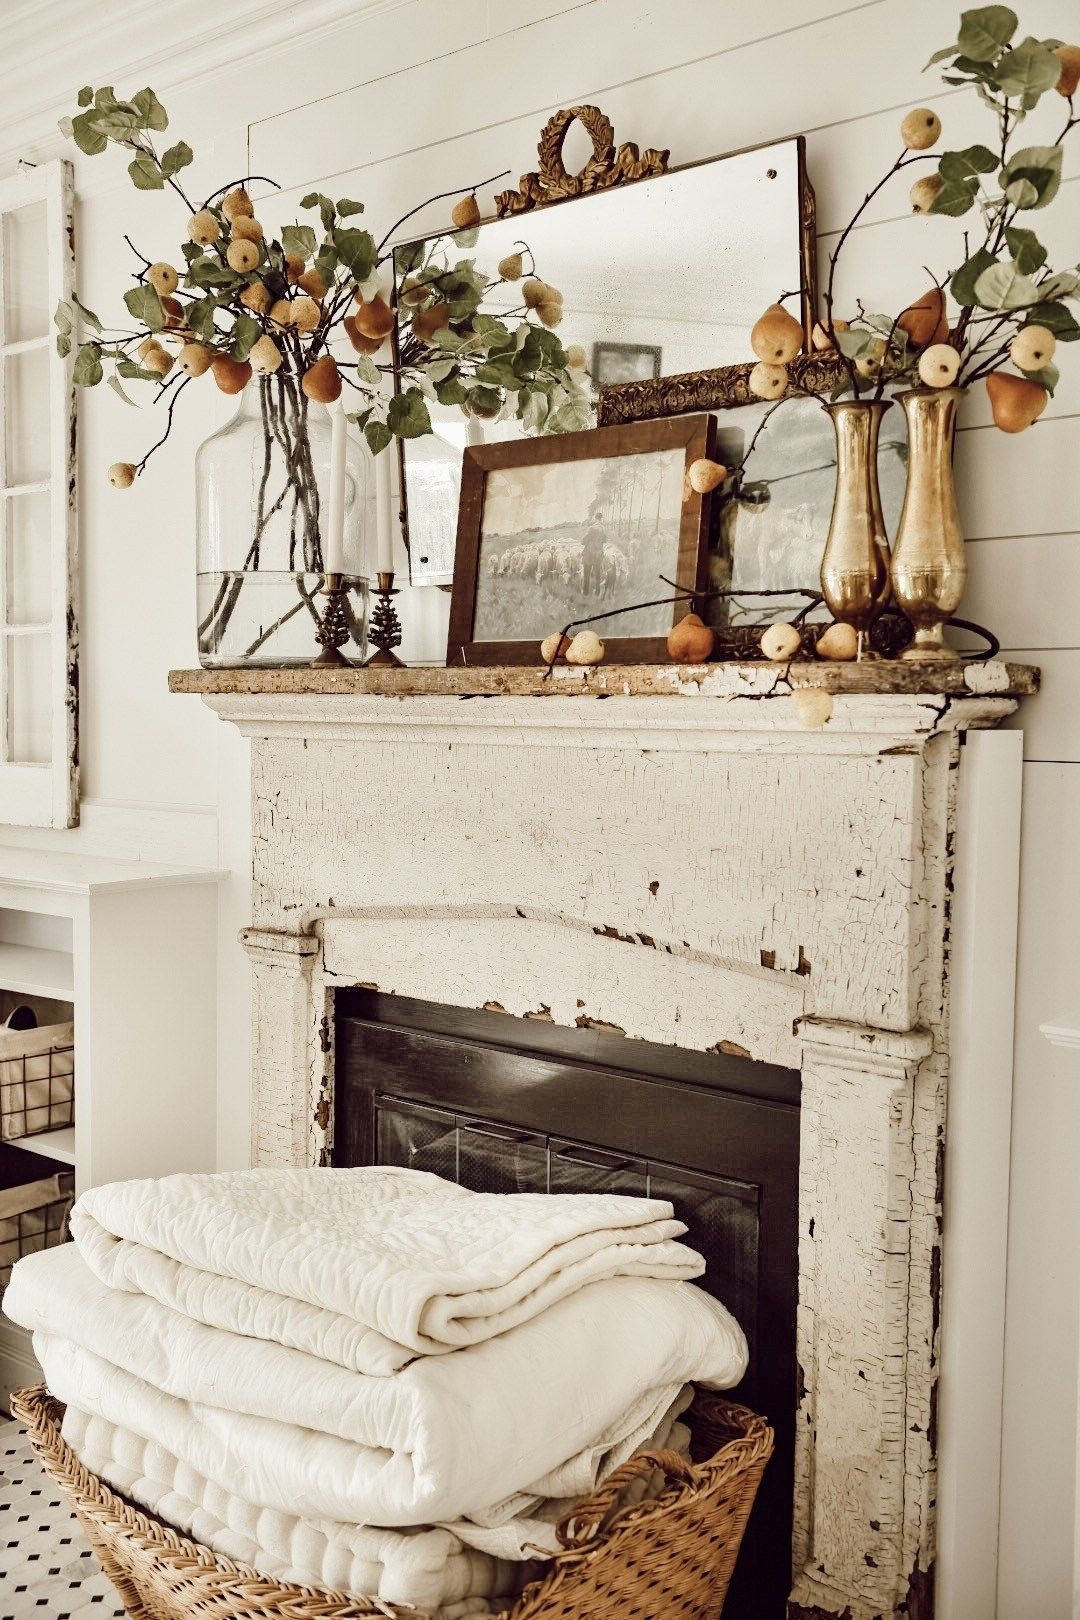 Eclectic Antique Fall Pear Mantel Chic Home Decor Farm House Living Room Decor